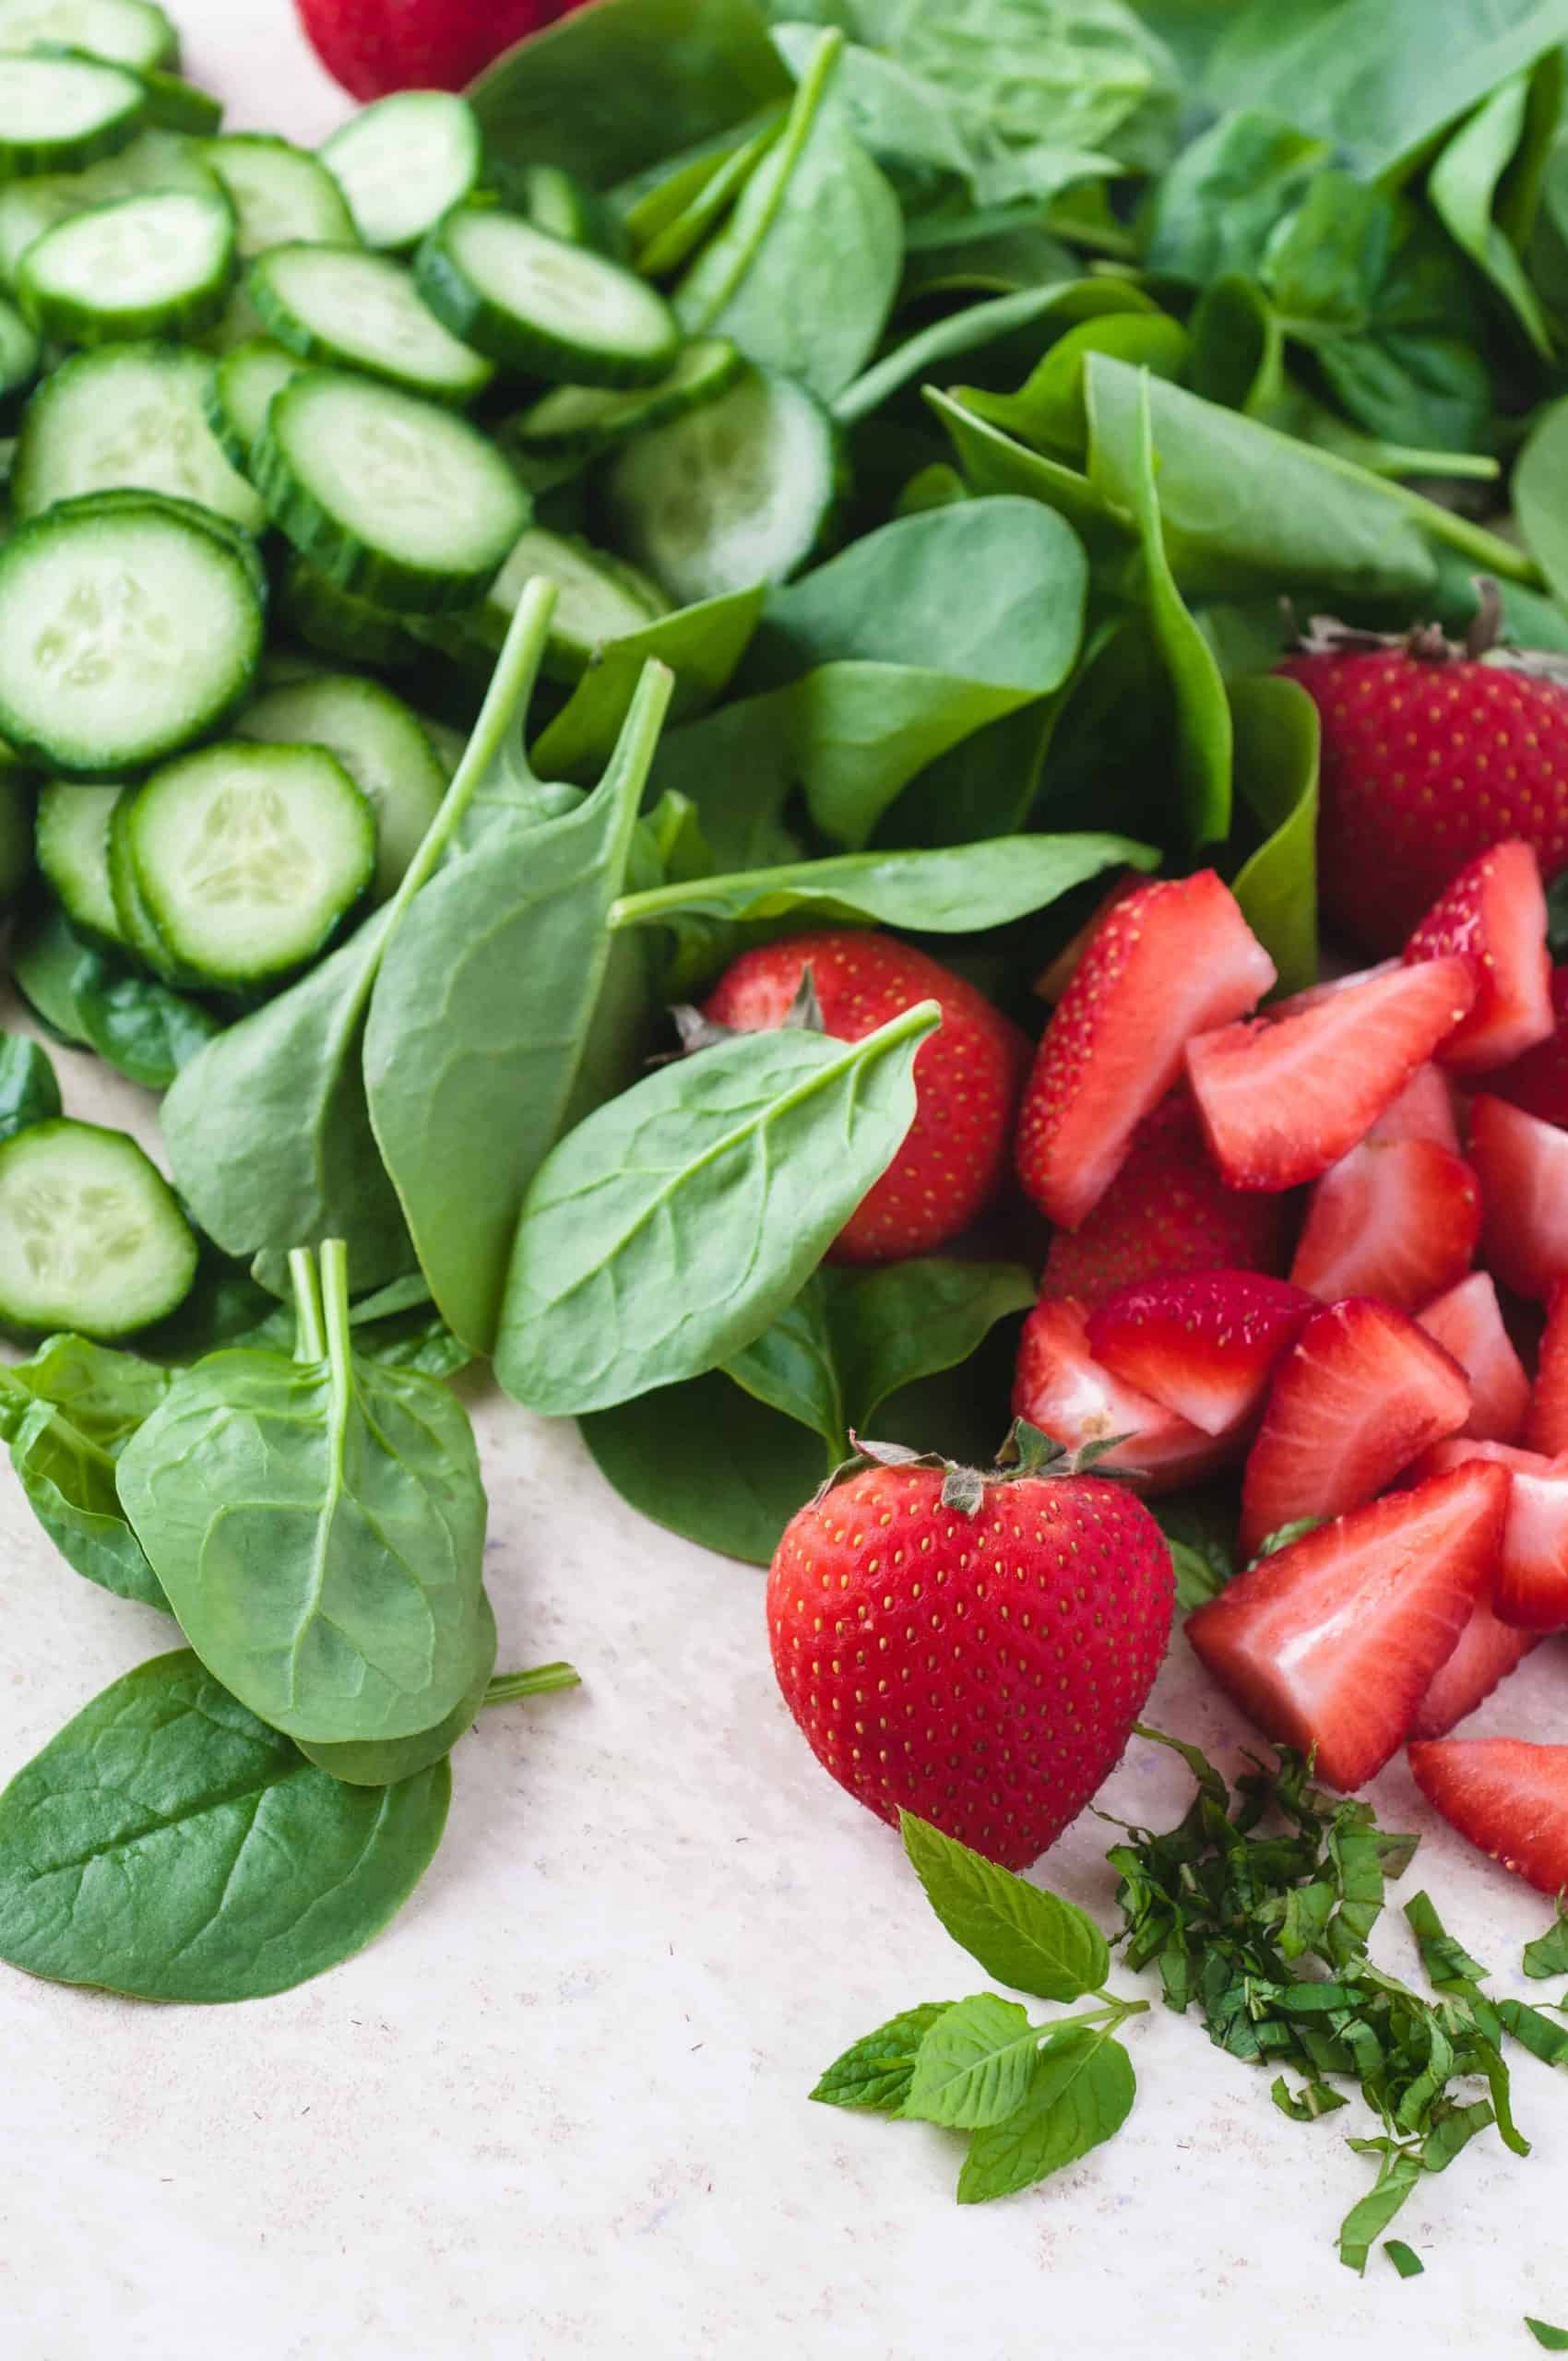 Baby Spinach, Sliced Cucumbers and Sliced Strawberries